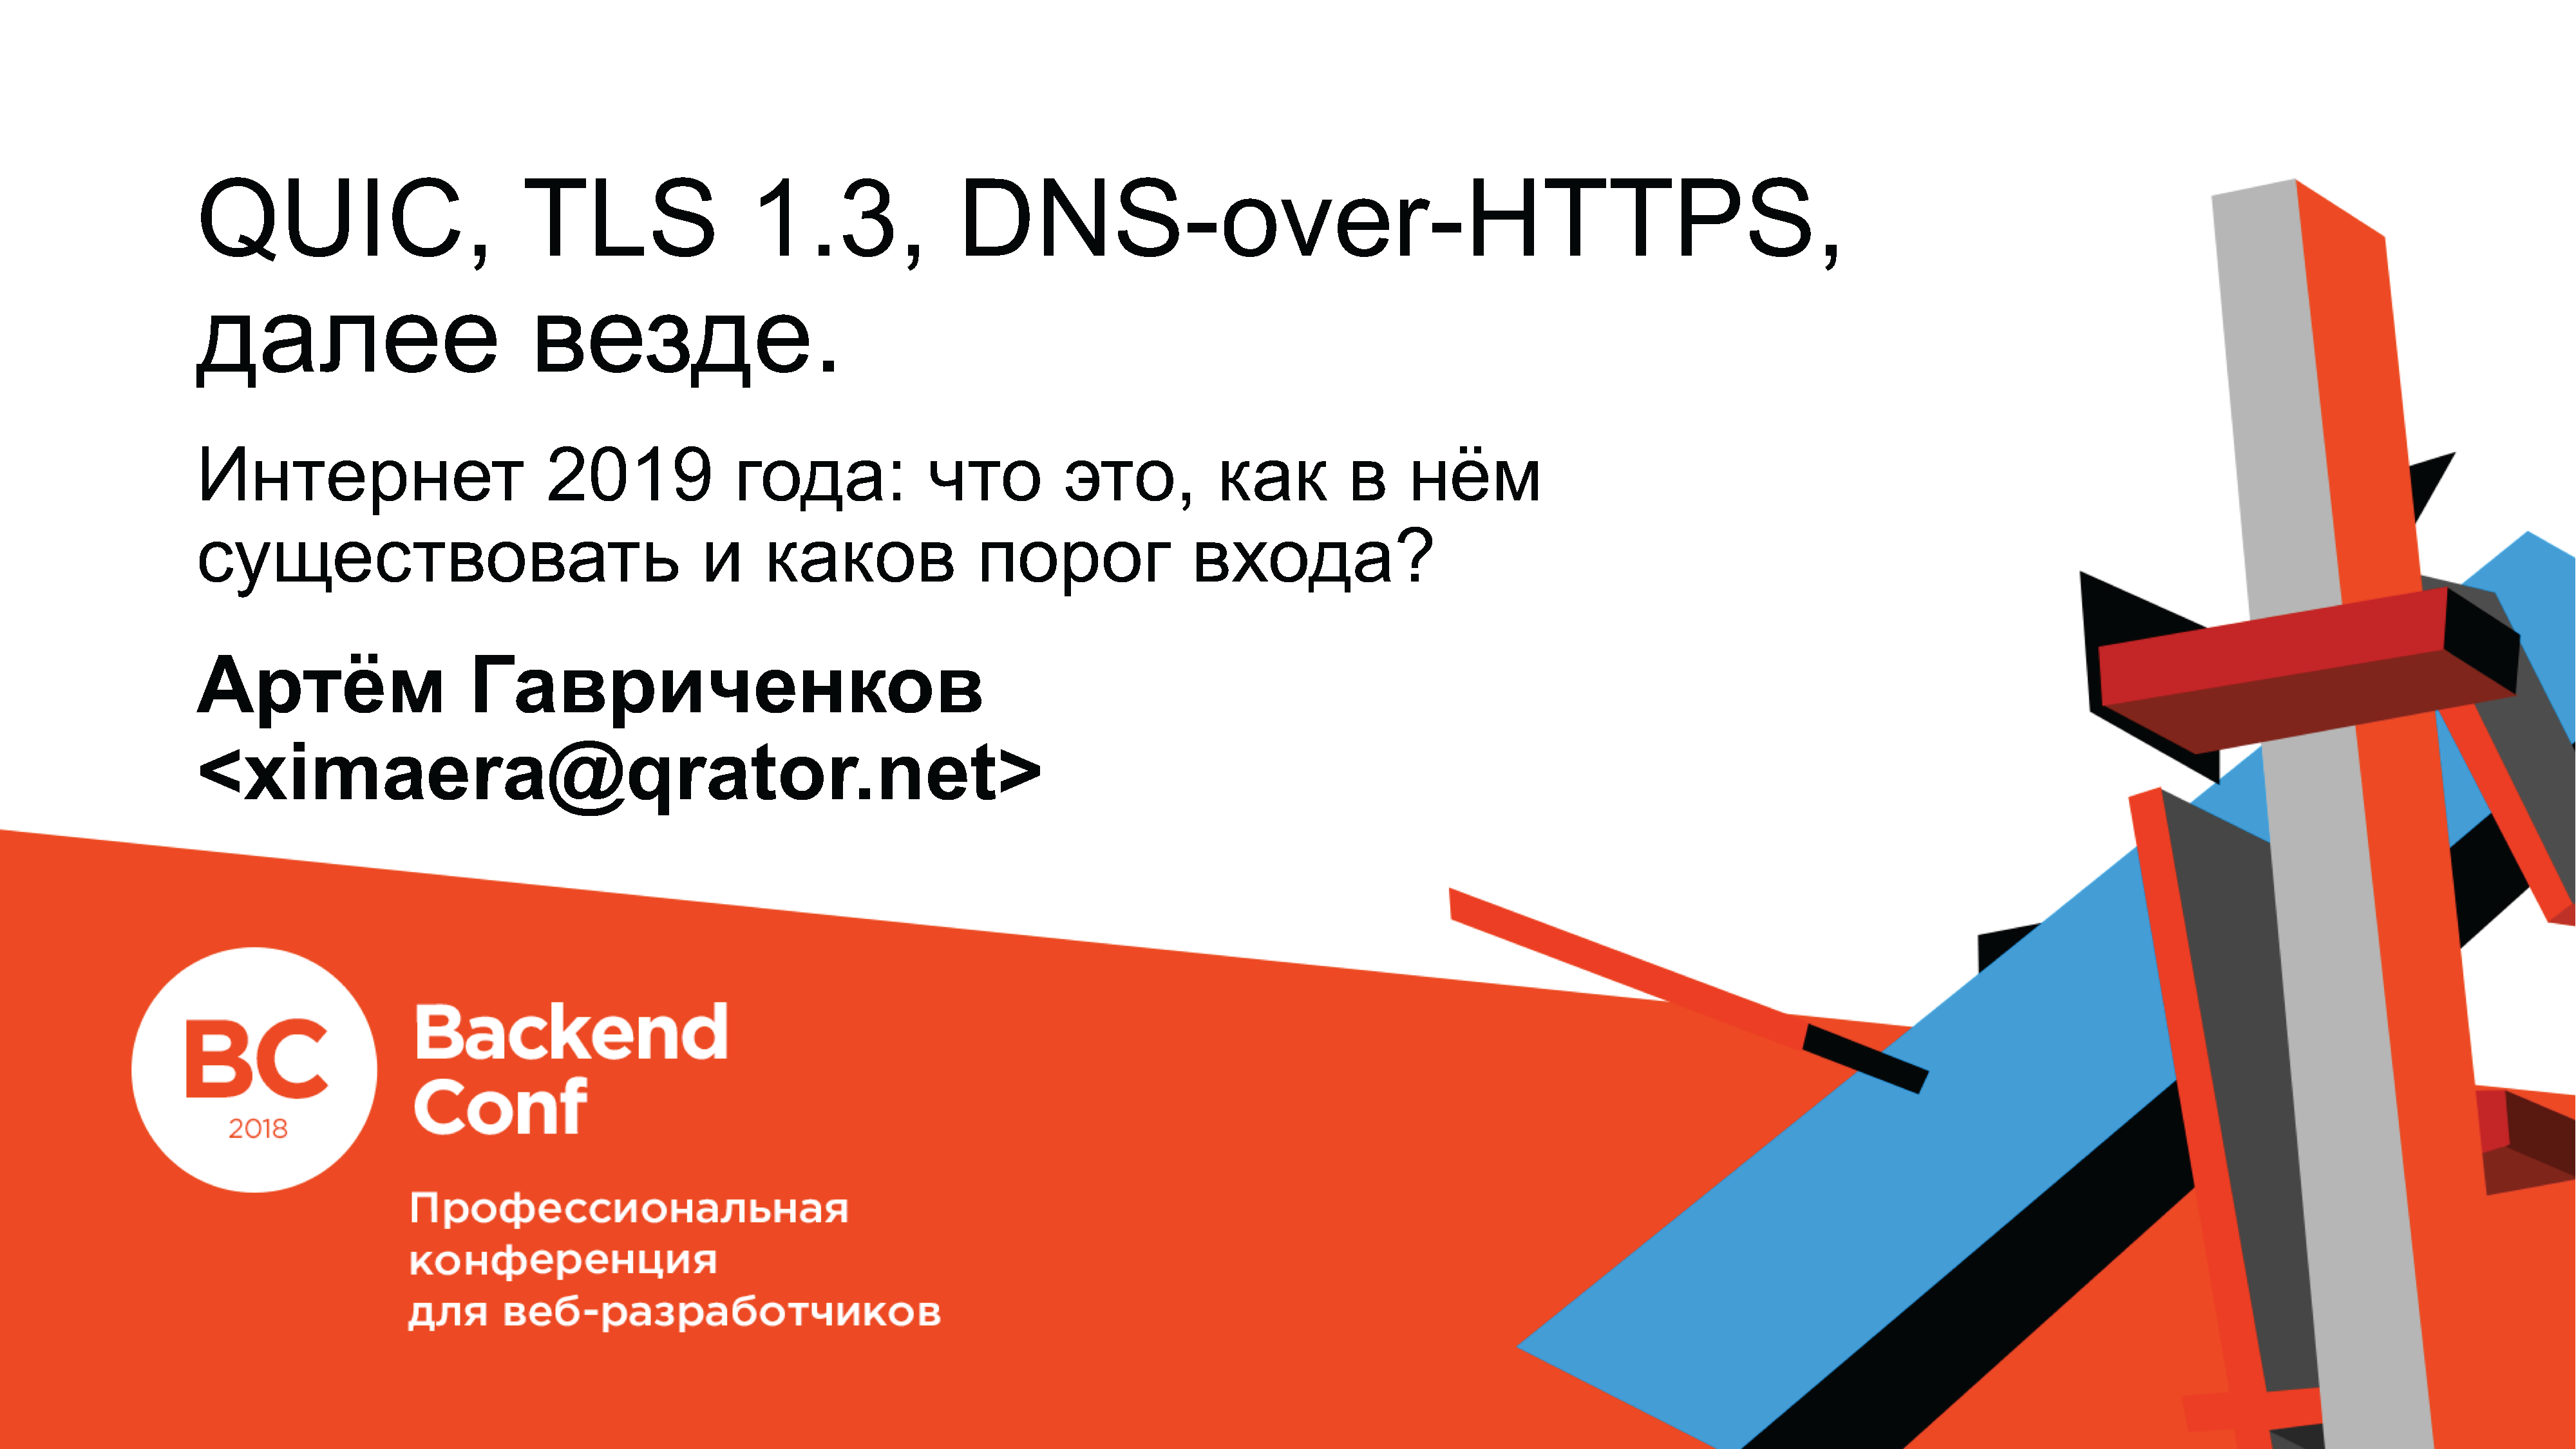 QUIC, TLS 1.? DNS-over-HTTPS, then everywhere